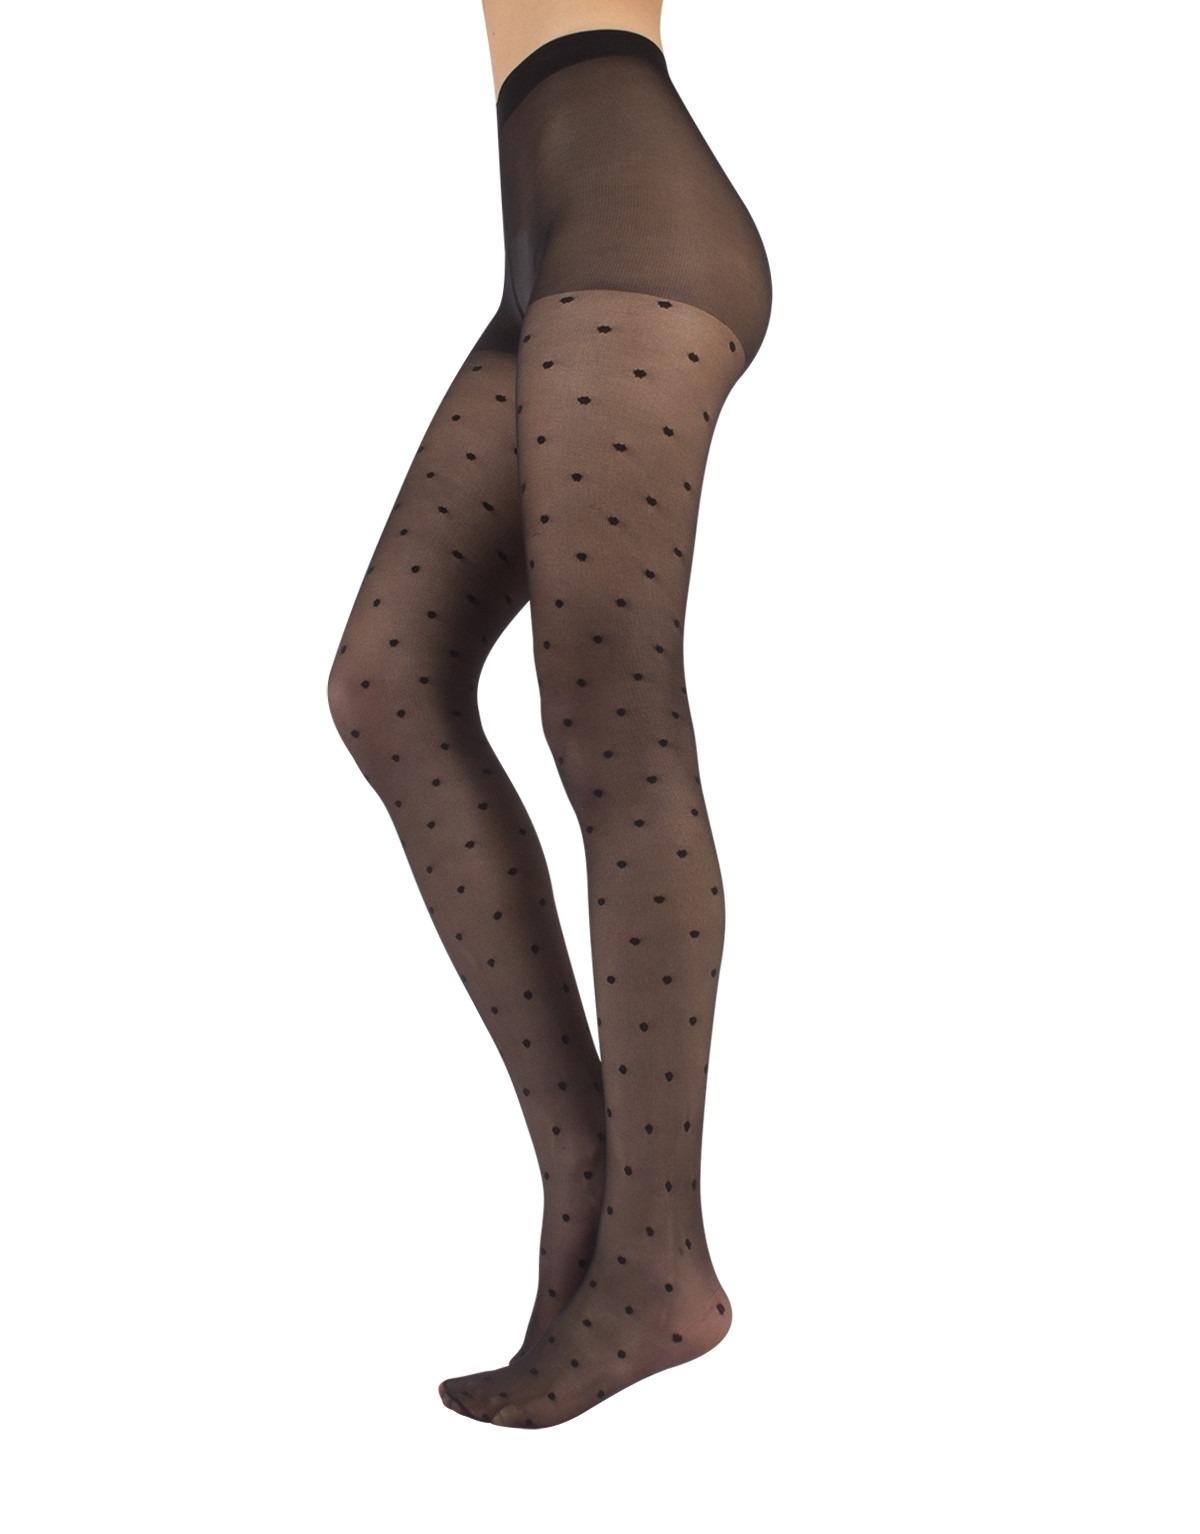 MICRO-NET TIGHTS WITH POLKA DOTS - 20 DEN